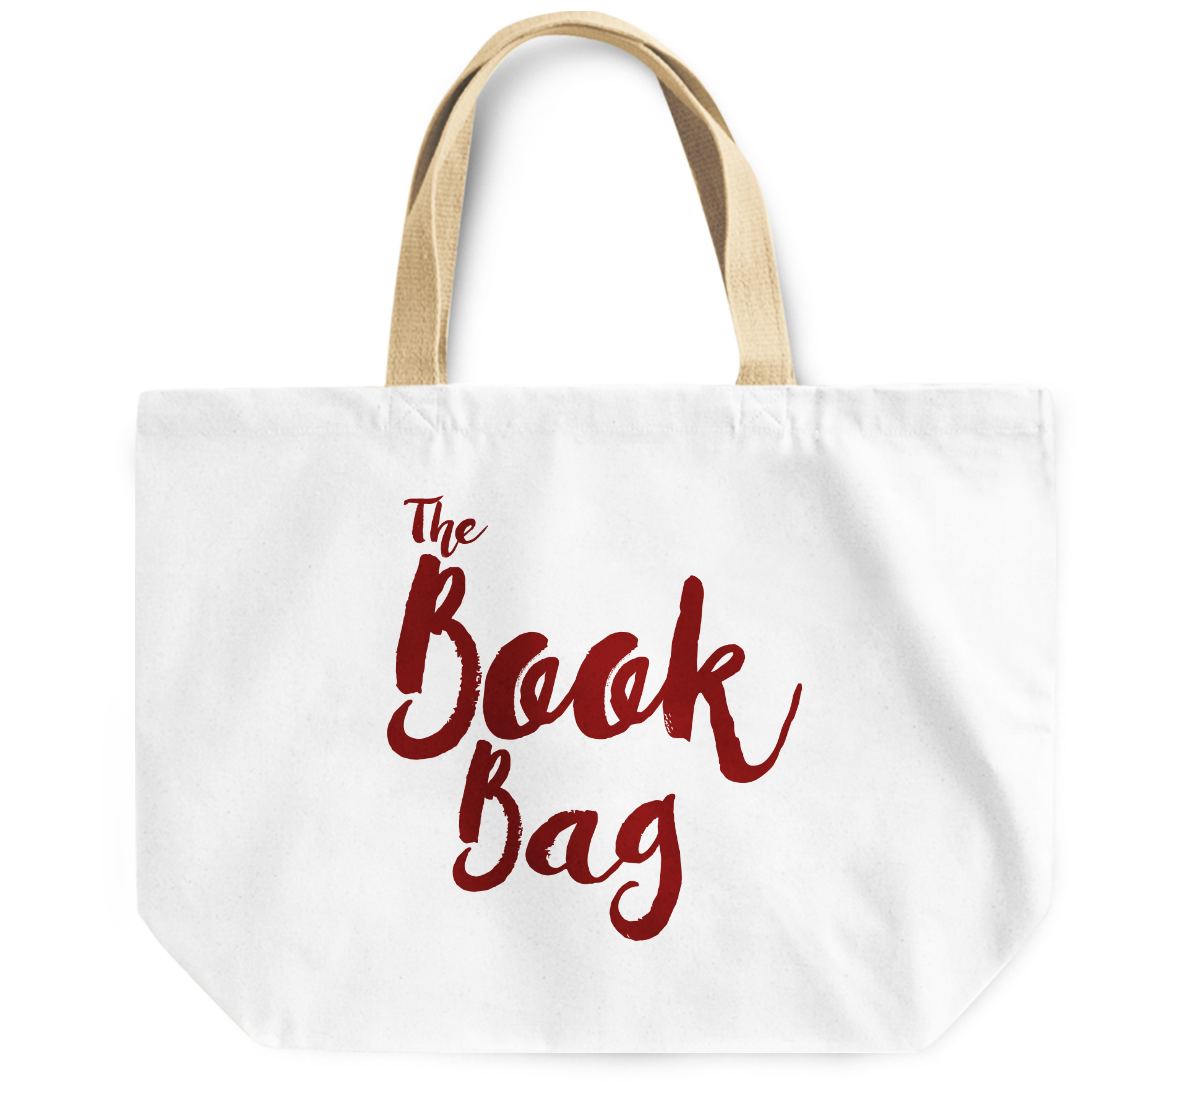 Tote Bag The book Bag By Loud Universe